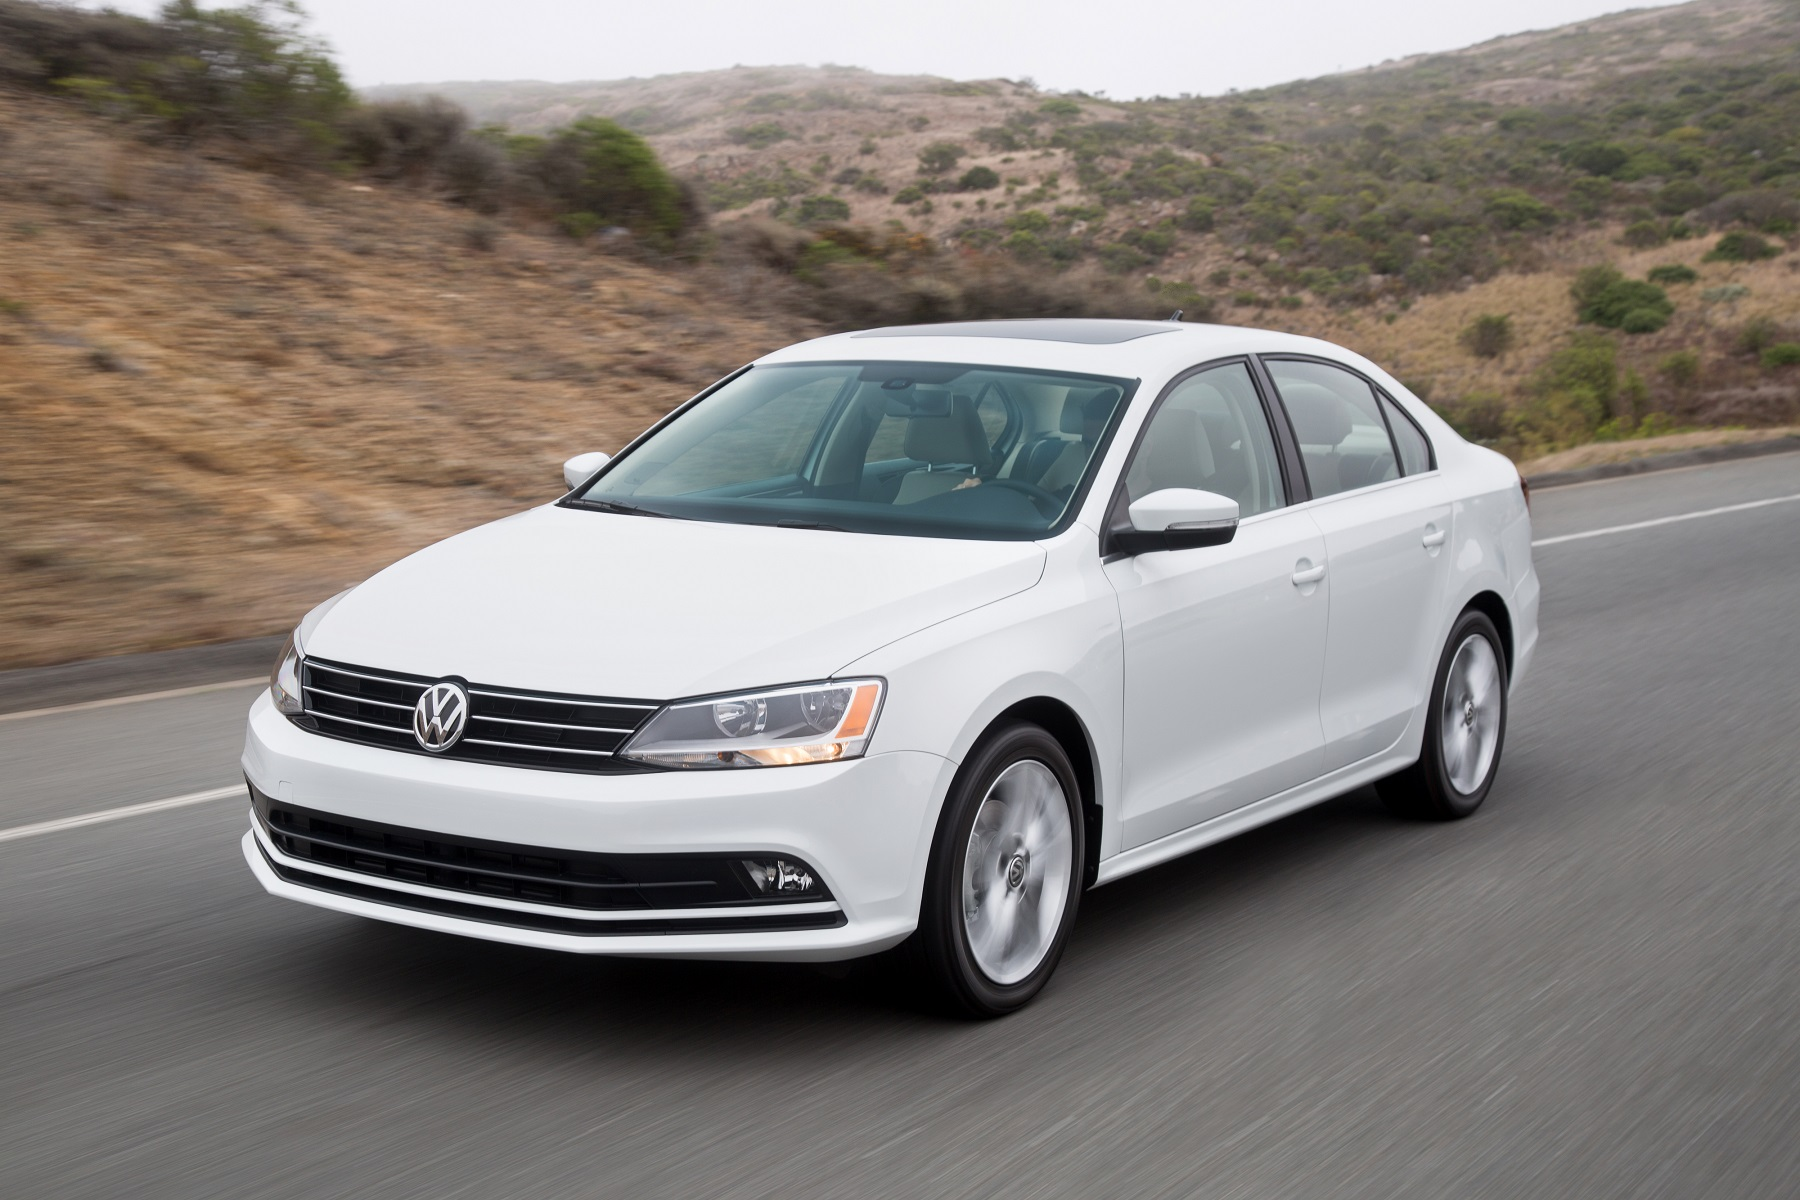 Manufacturer Photo The 2017 Jetta Design Incorporates Clear Precise Lineuscular Surfaces To